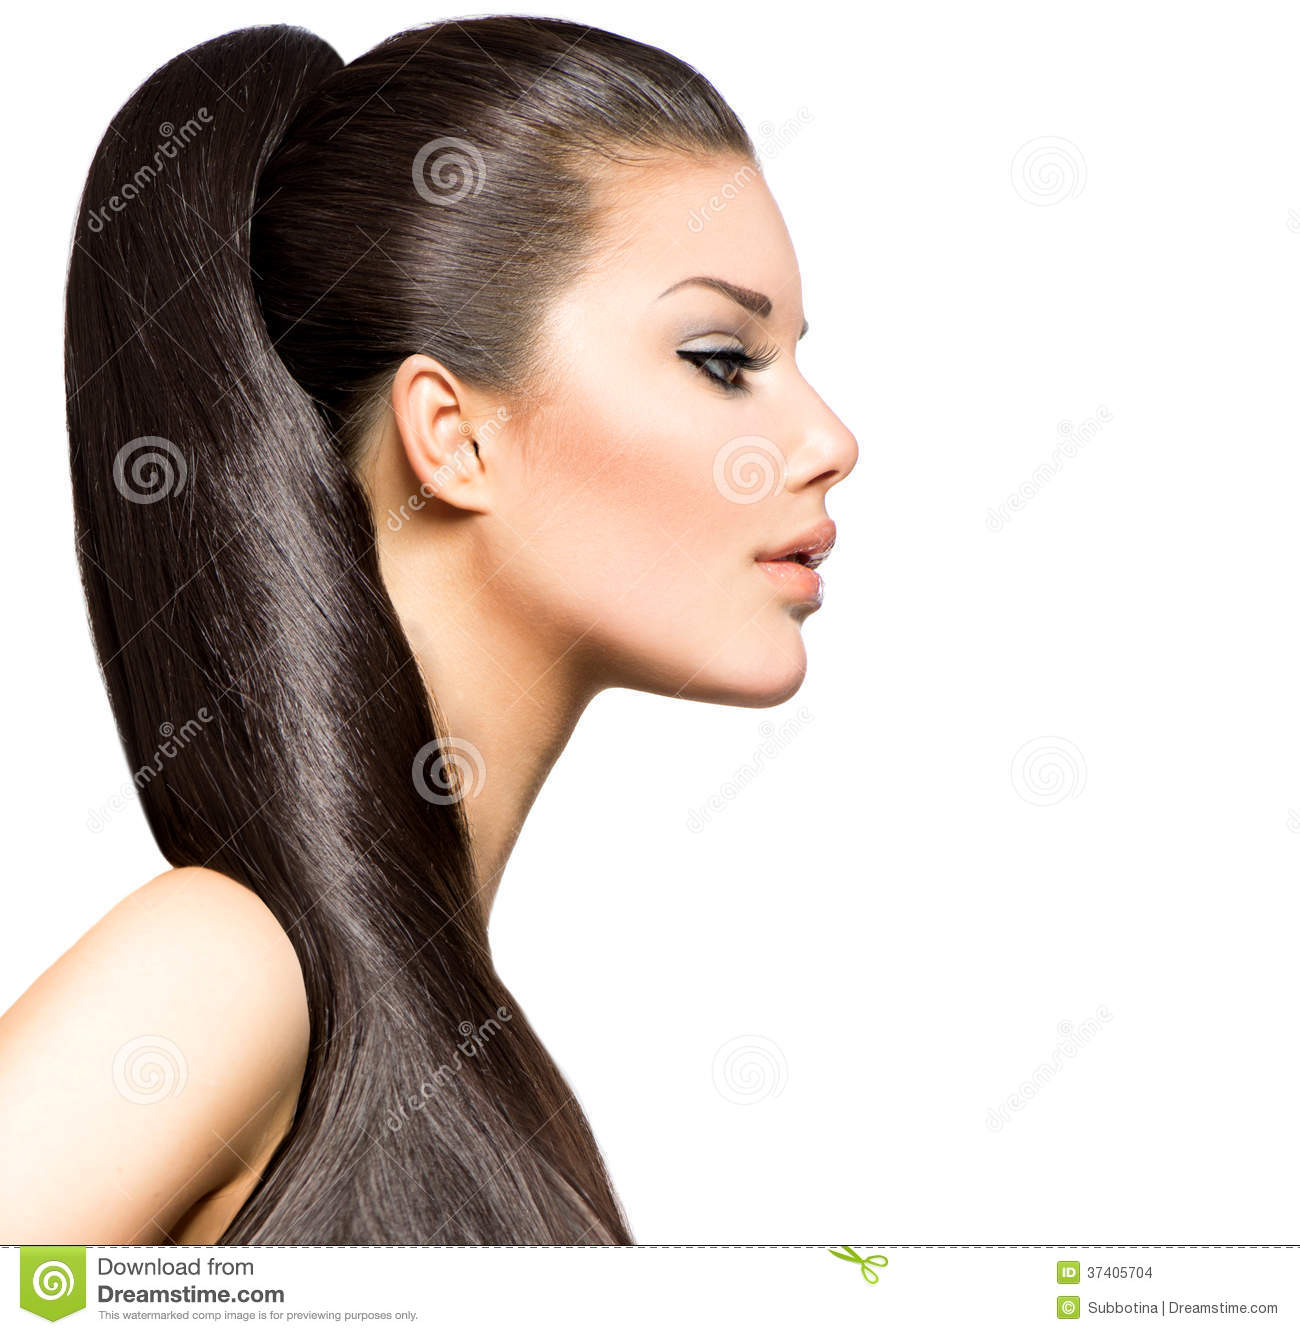 Ponytail Hairstyle Stock Images - Image: 37405704